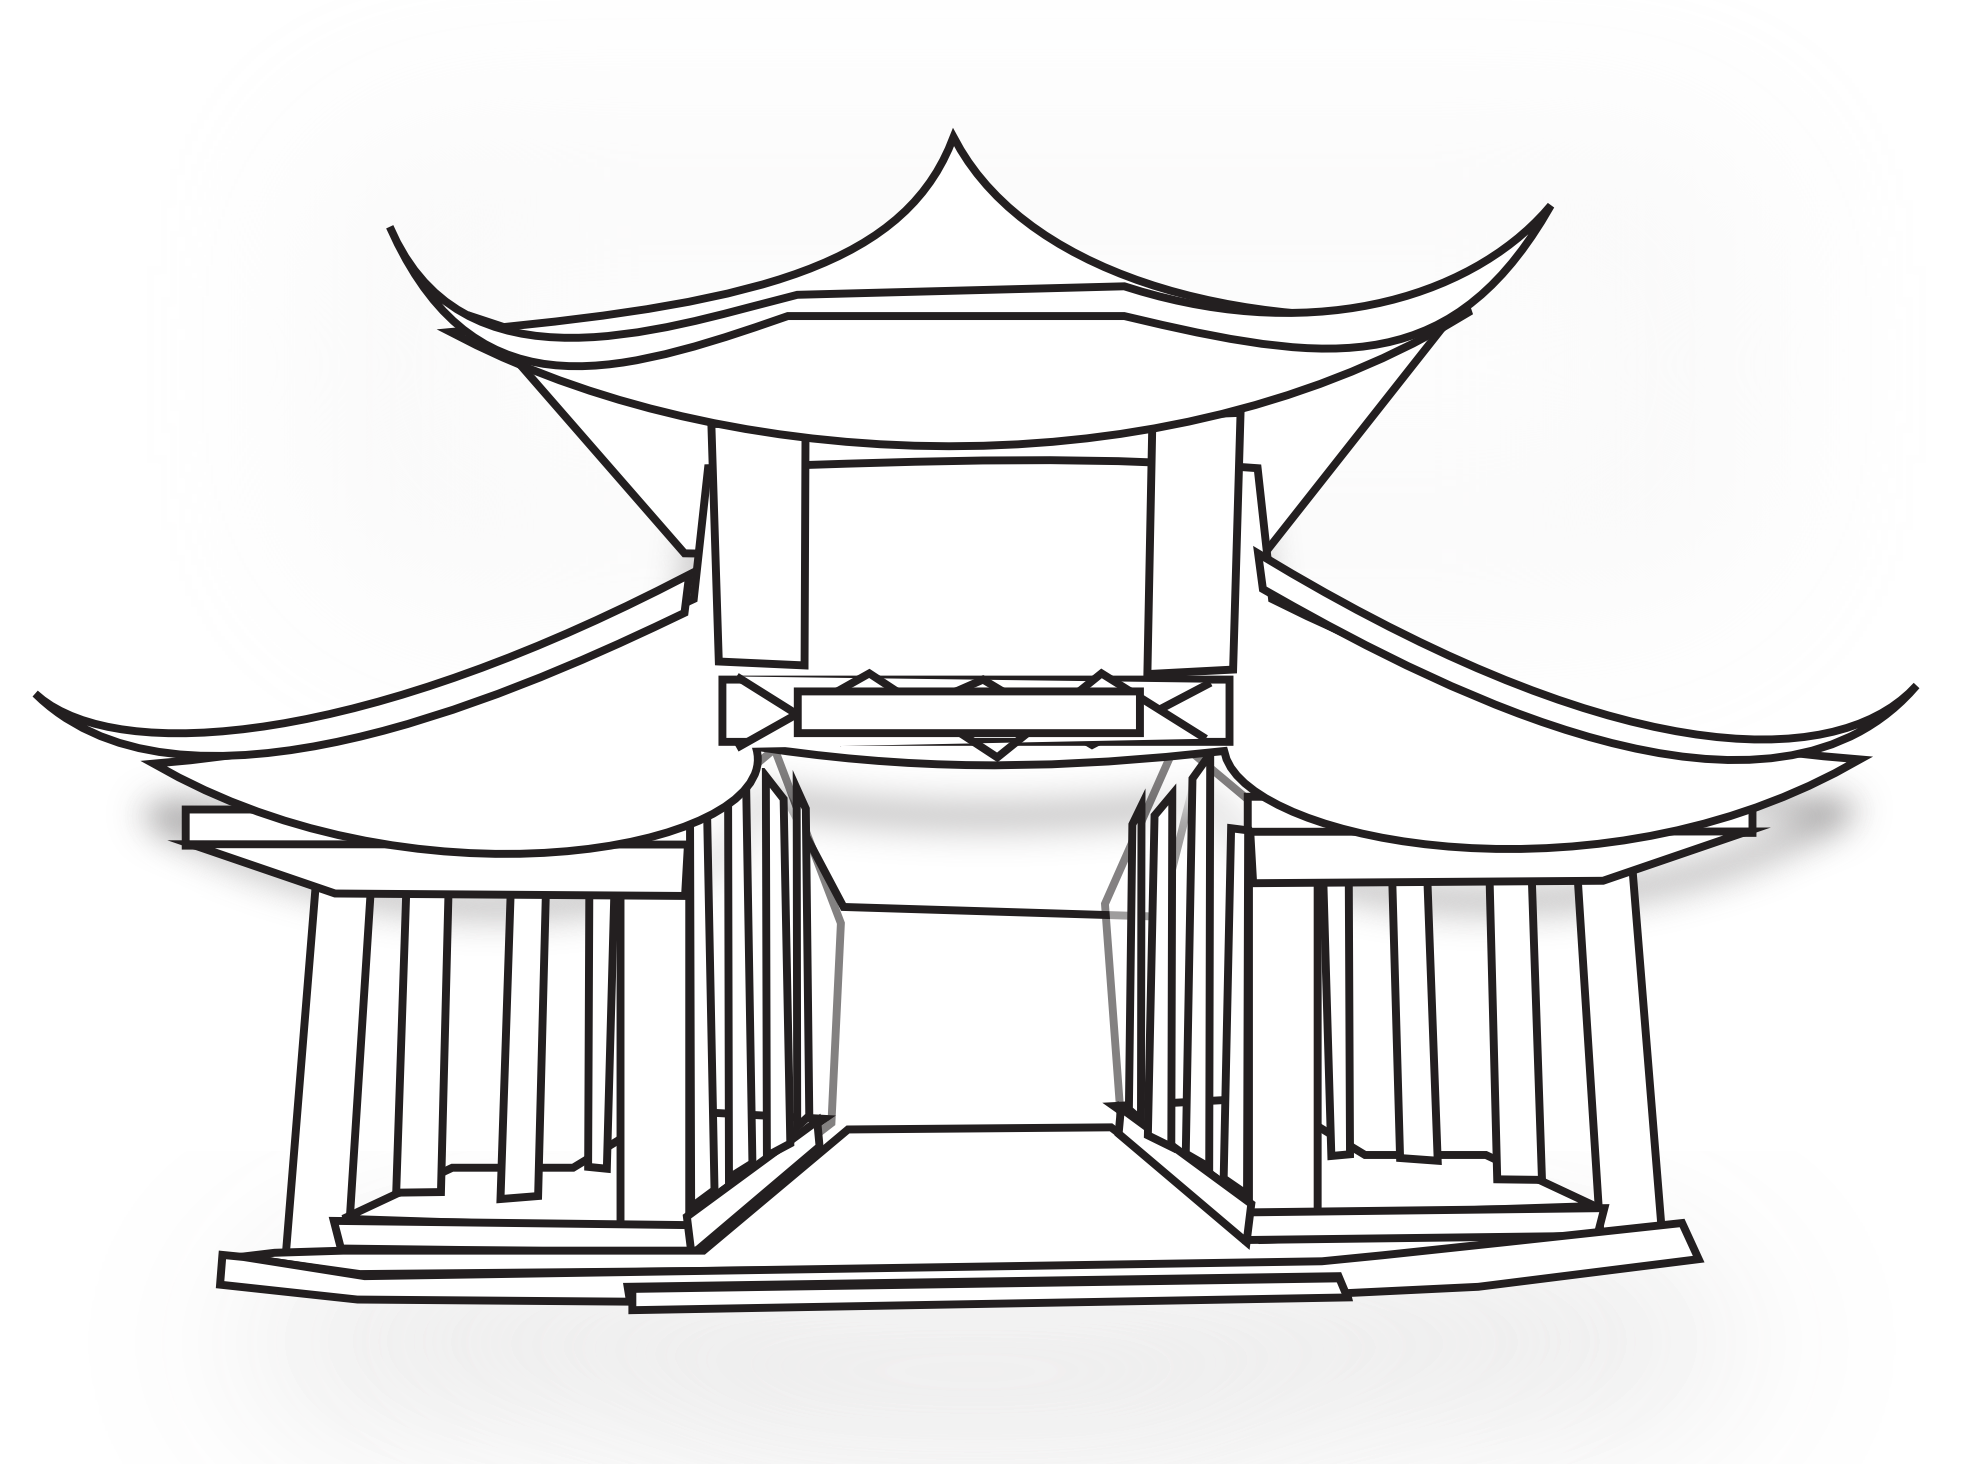 2020 Other Images Hindu Temple Clipart Black And White